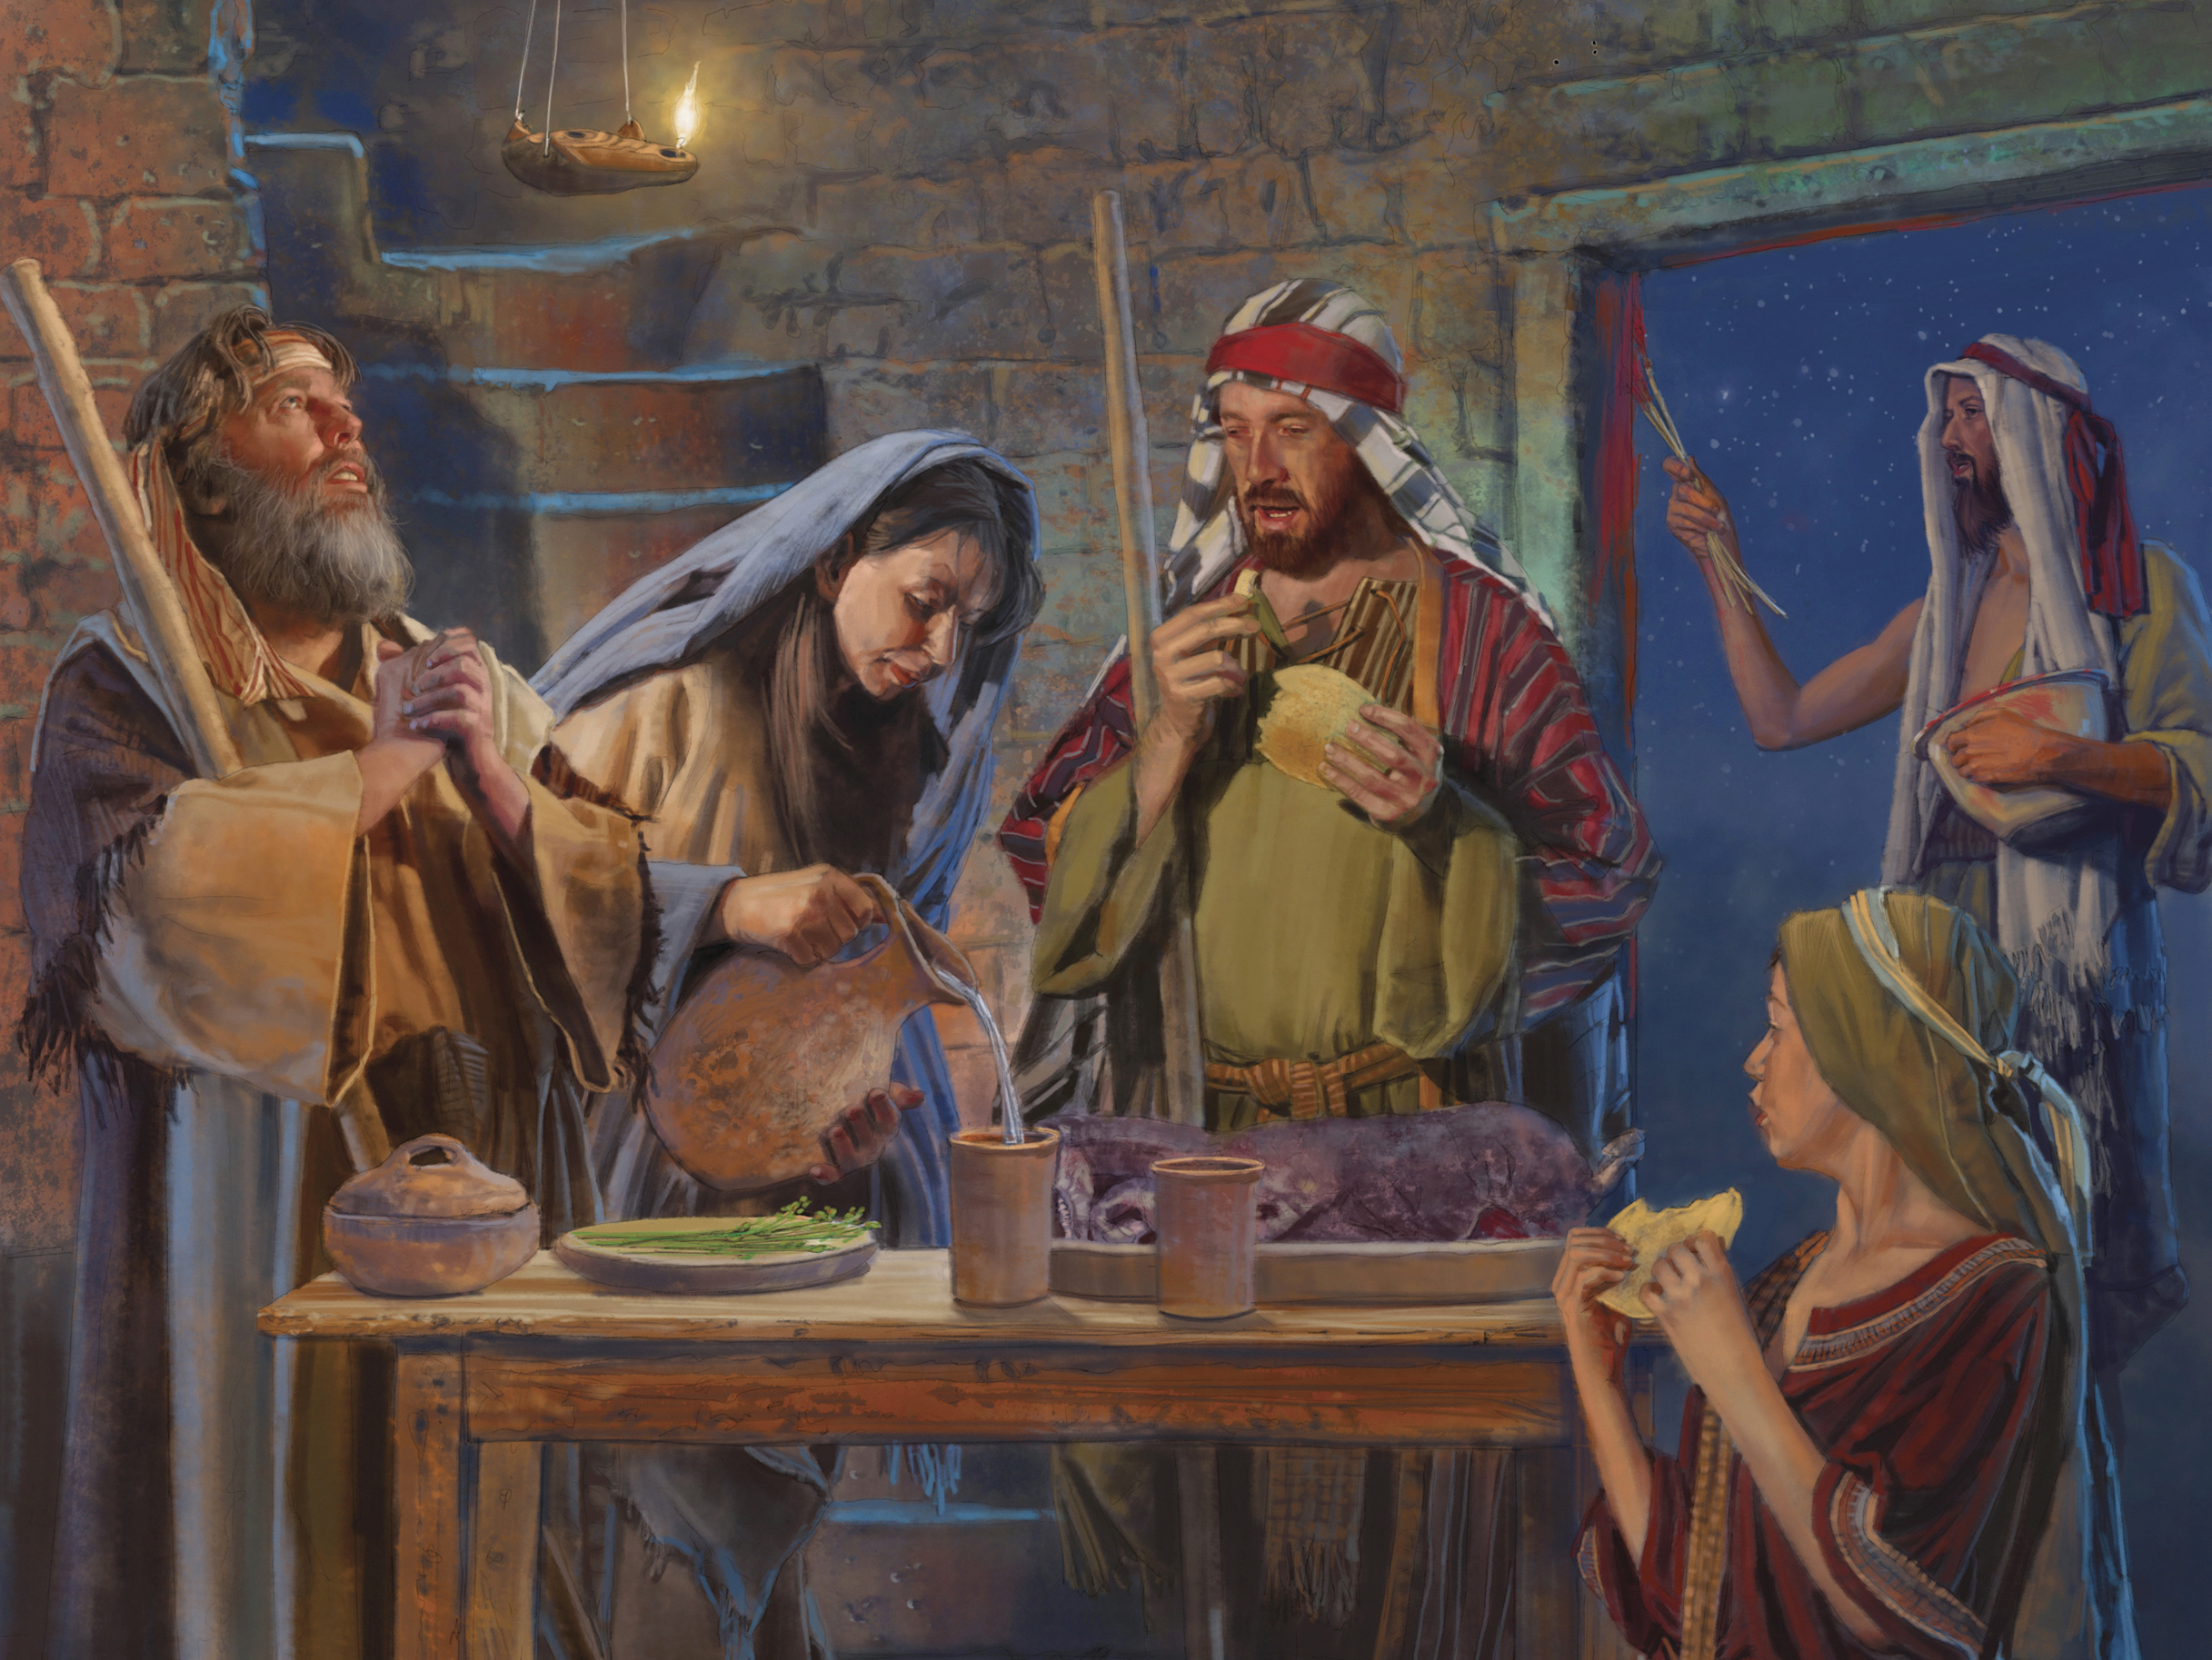 The Passover Supper, by Brian Call